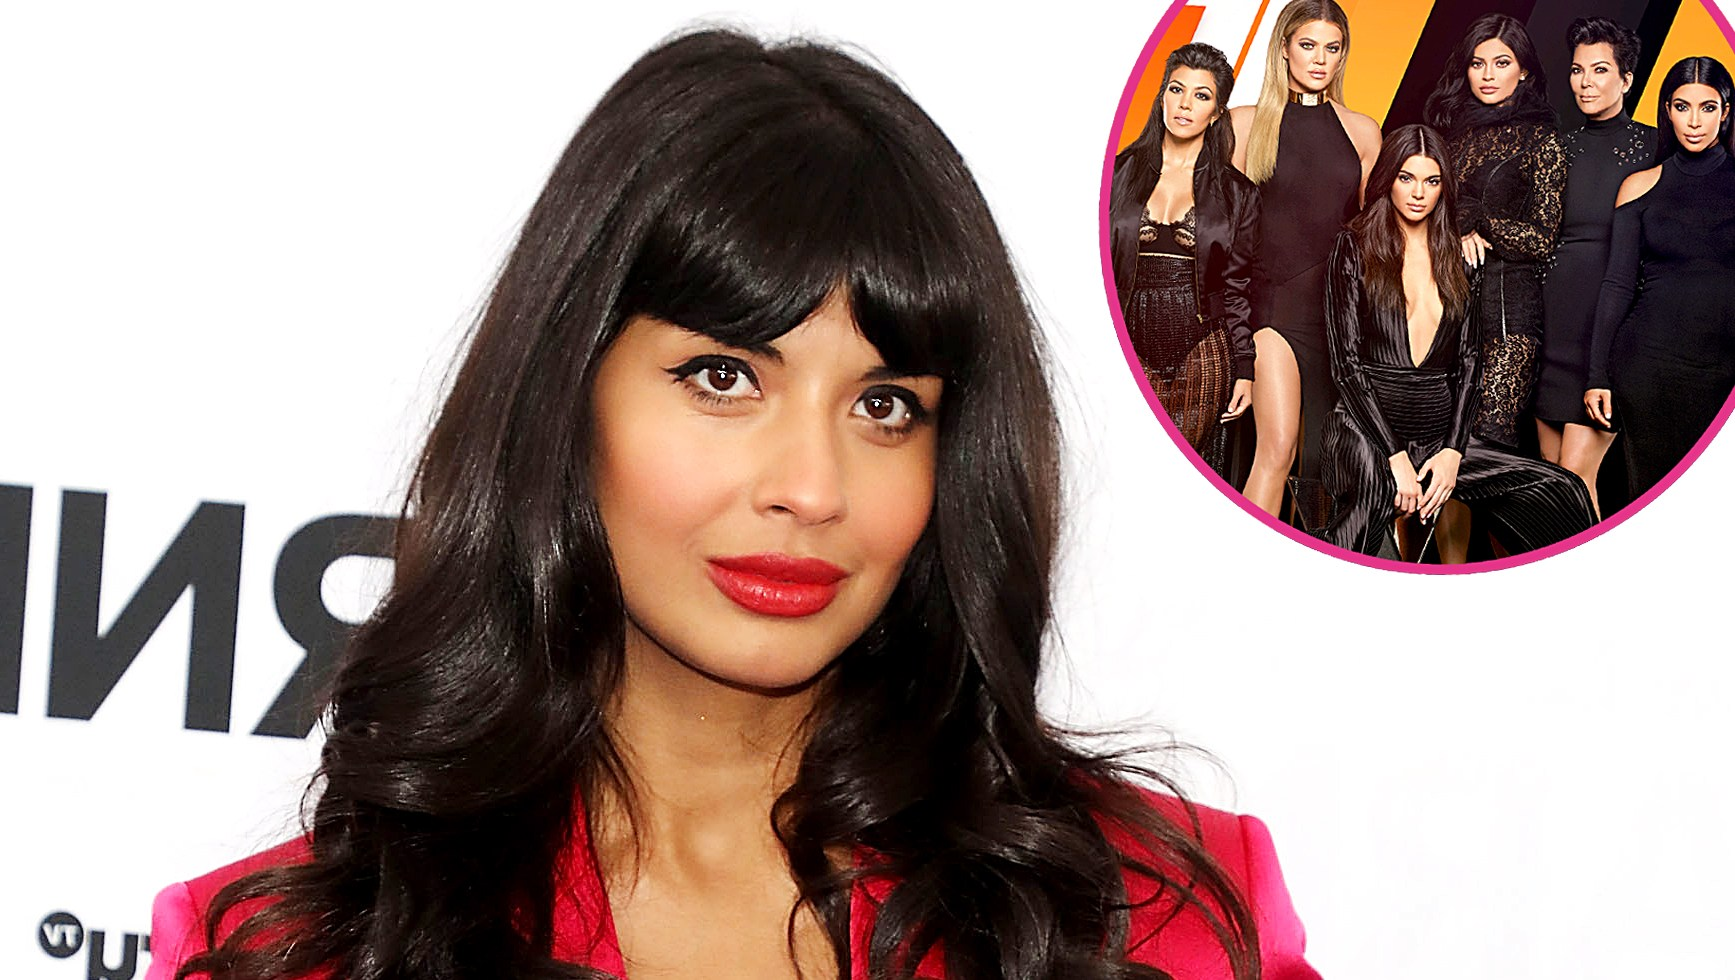 Jameela Jamil on Kardashians Don't Dislike Them